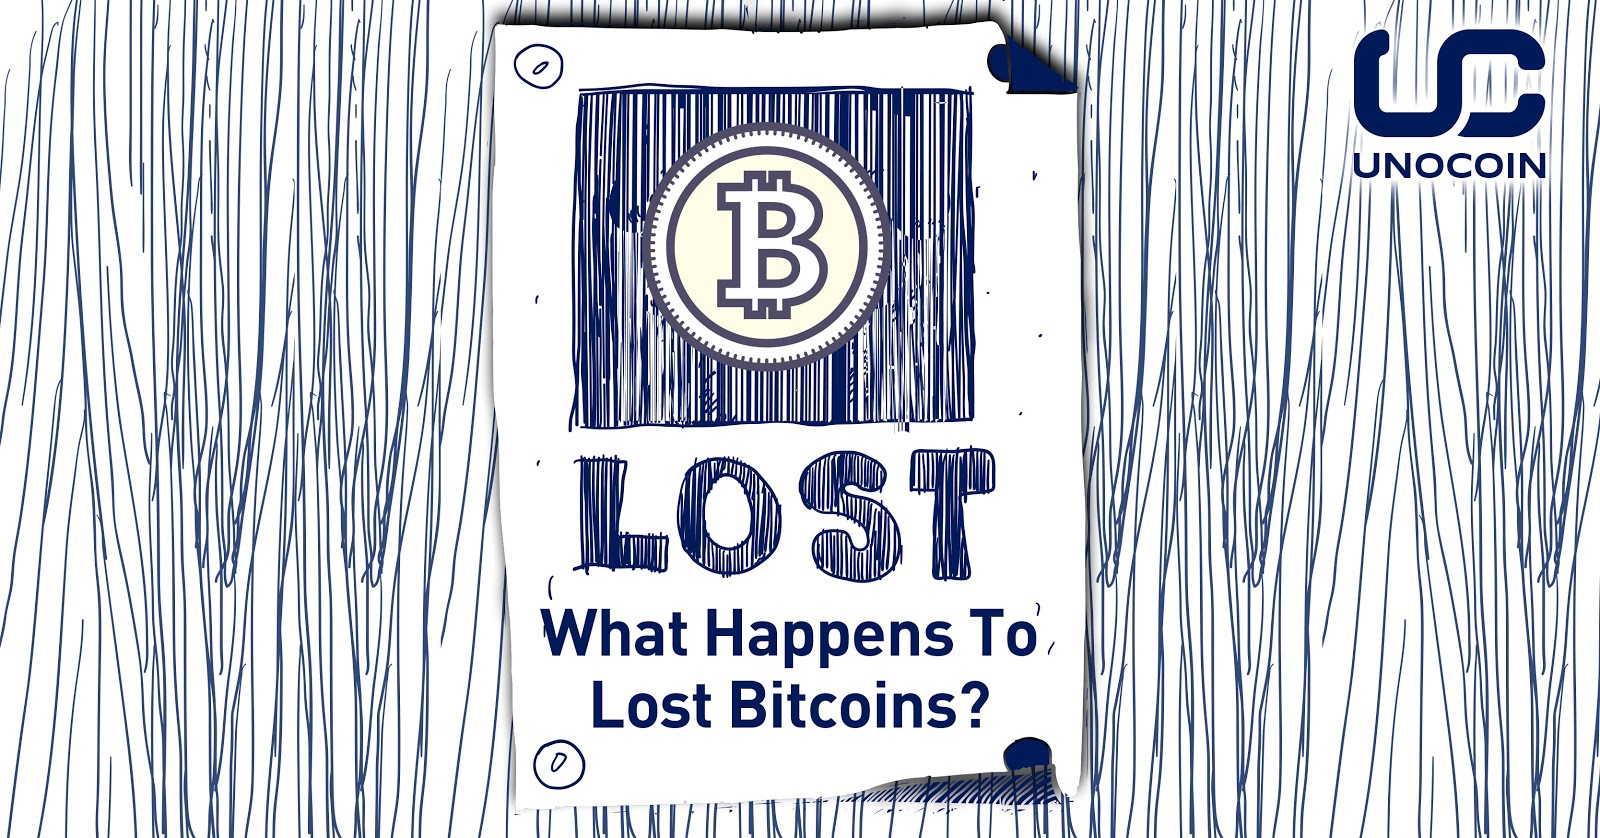 What Happens To Lost Bitcoins? - Unocoin